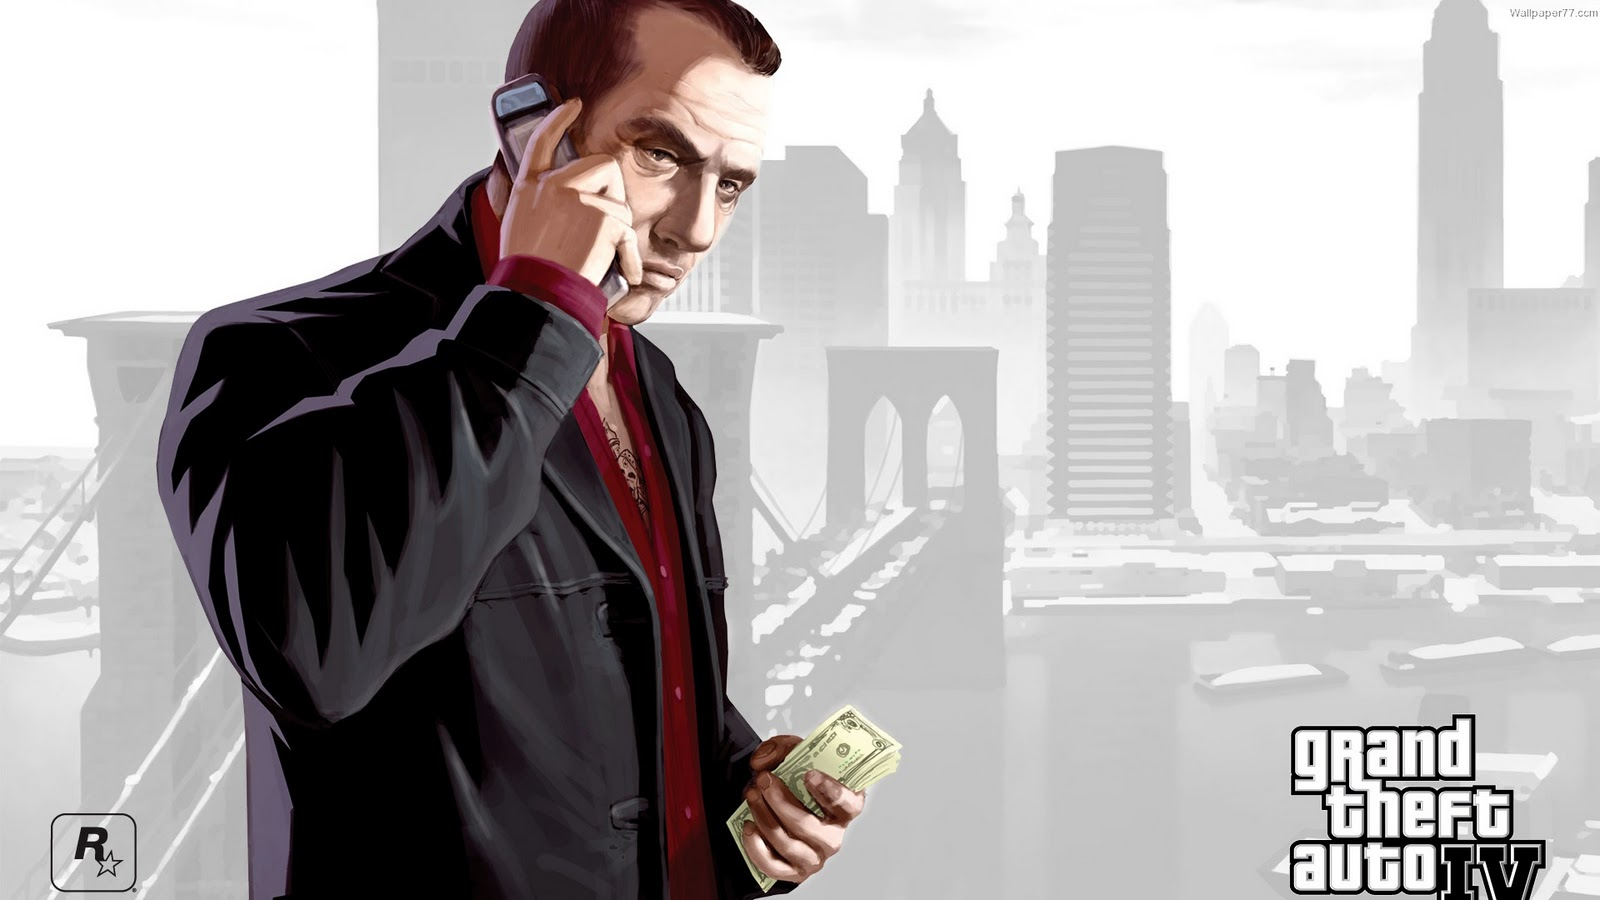 gta 4 wallpaper 1080p see to world